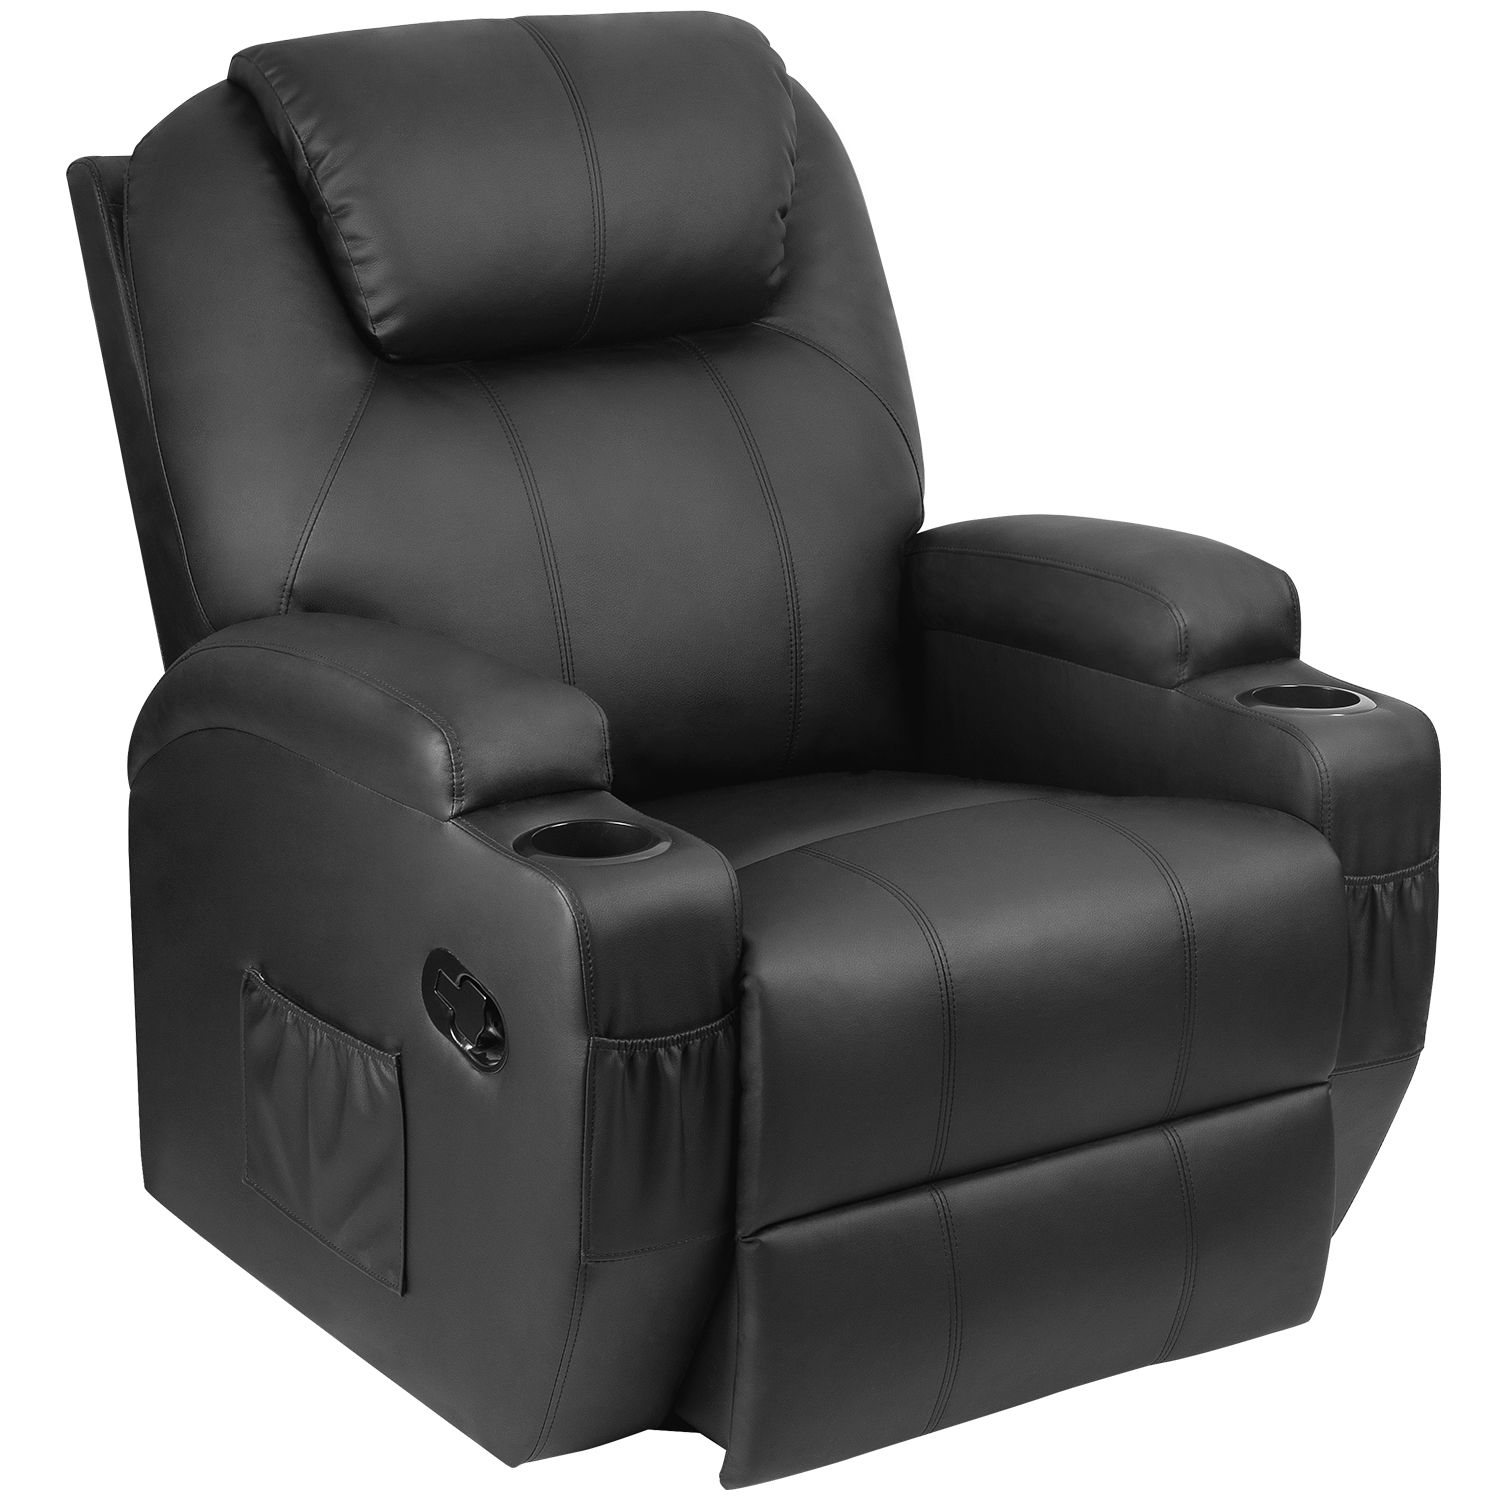 Home in 2020 Recliner chair, Massage chair, Power